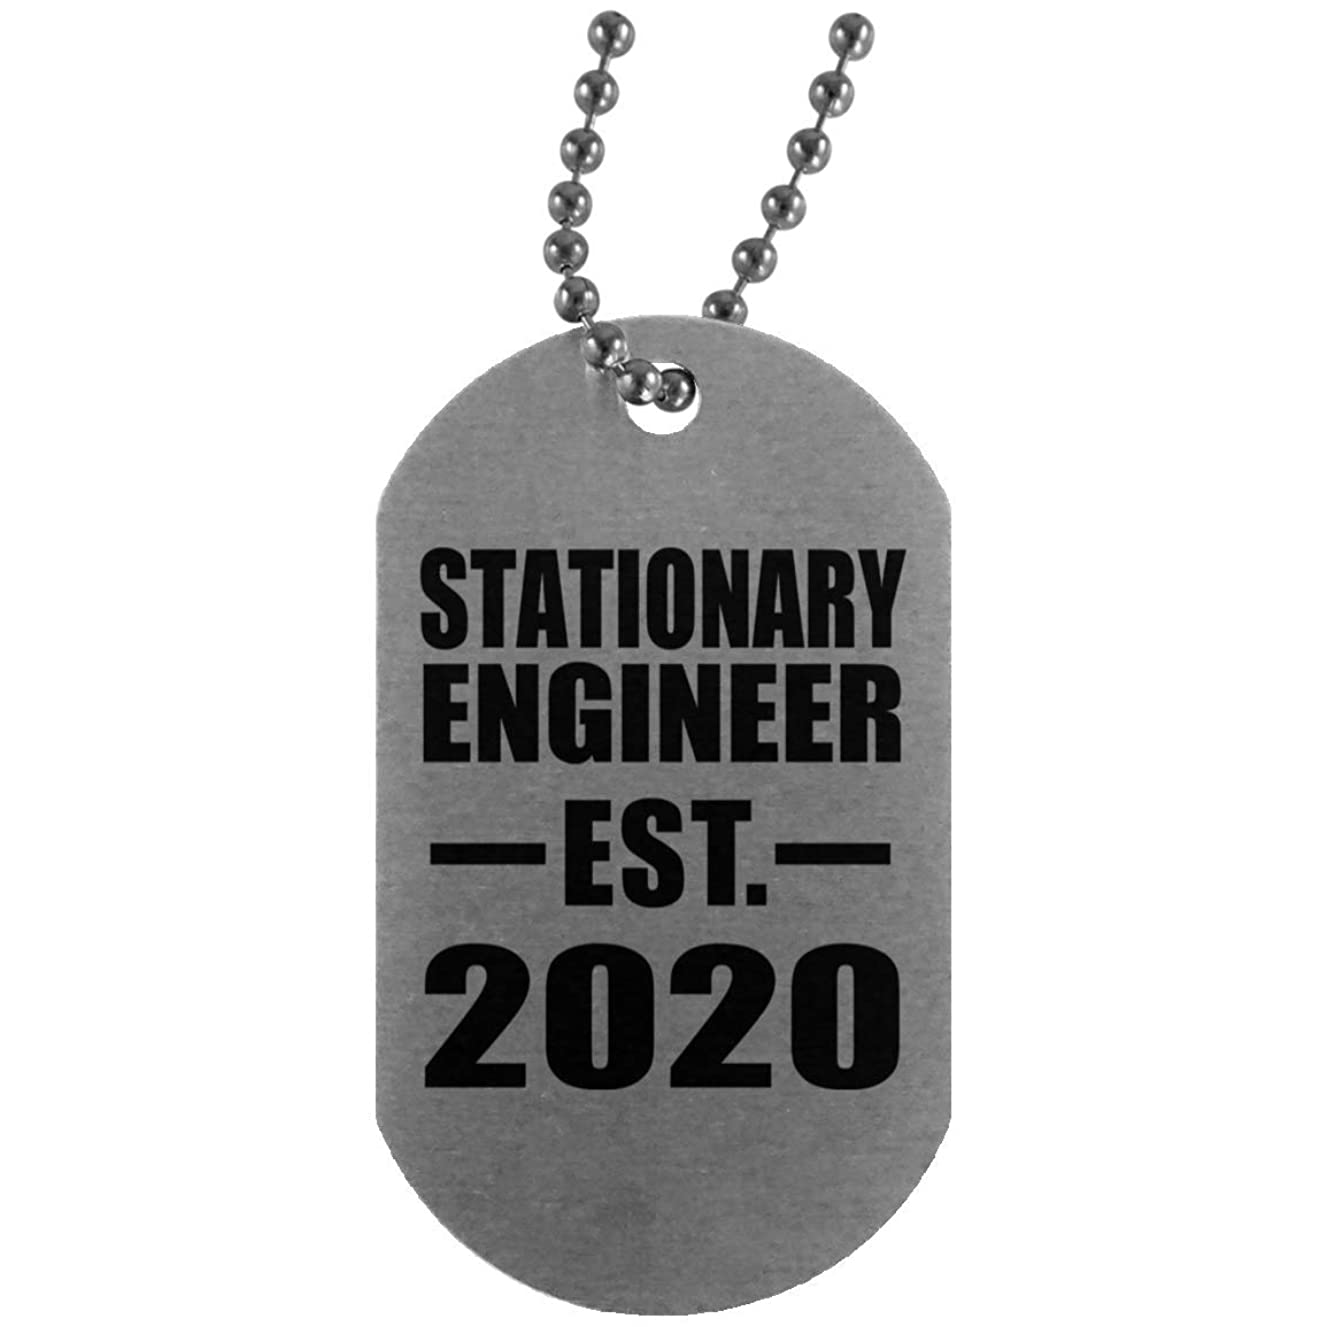 Stationary Engineer Established EST. 2020 - Silver Dog Tag Military ID Pendant Necklace Chain - Gift for Friend Colleague Retirement Graduation Mother's Father's Day Birthday Anniversary